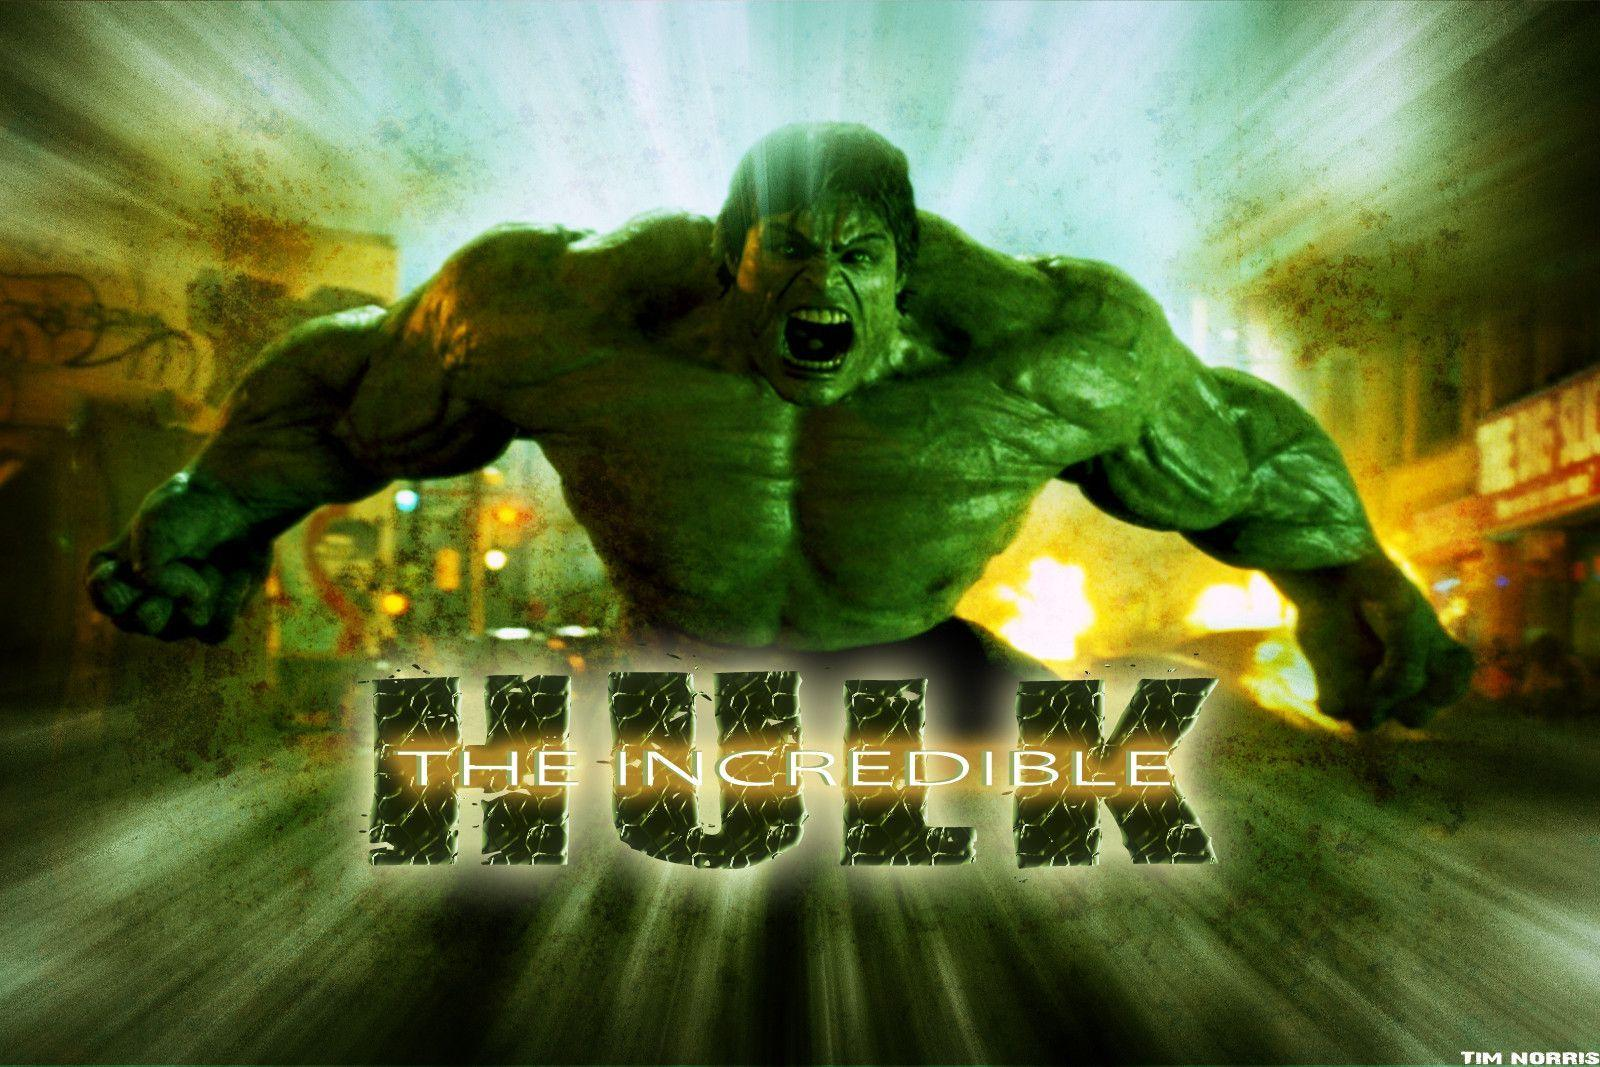 Incredible Hulk Wallpapers - Wallpaper Cave